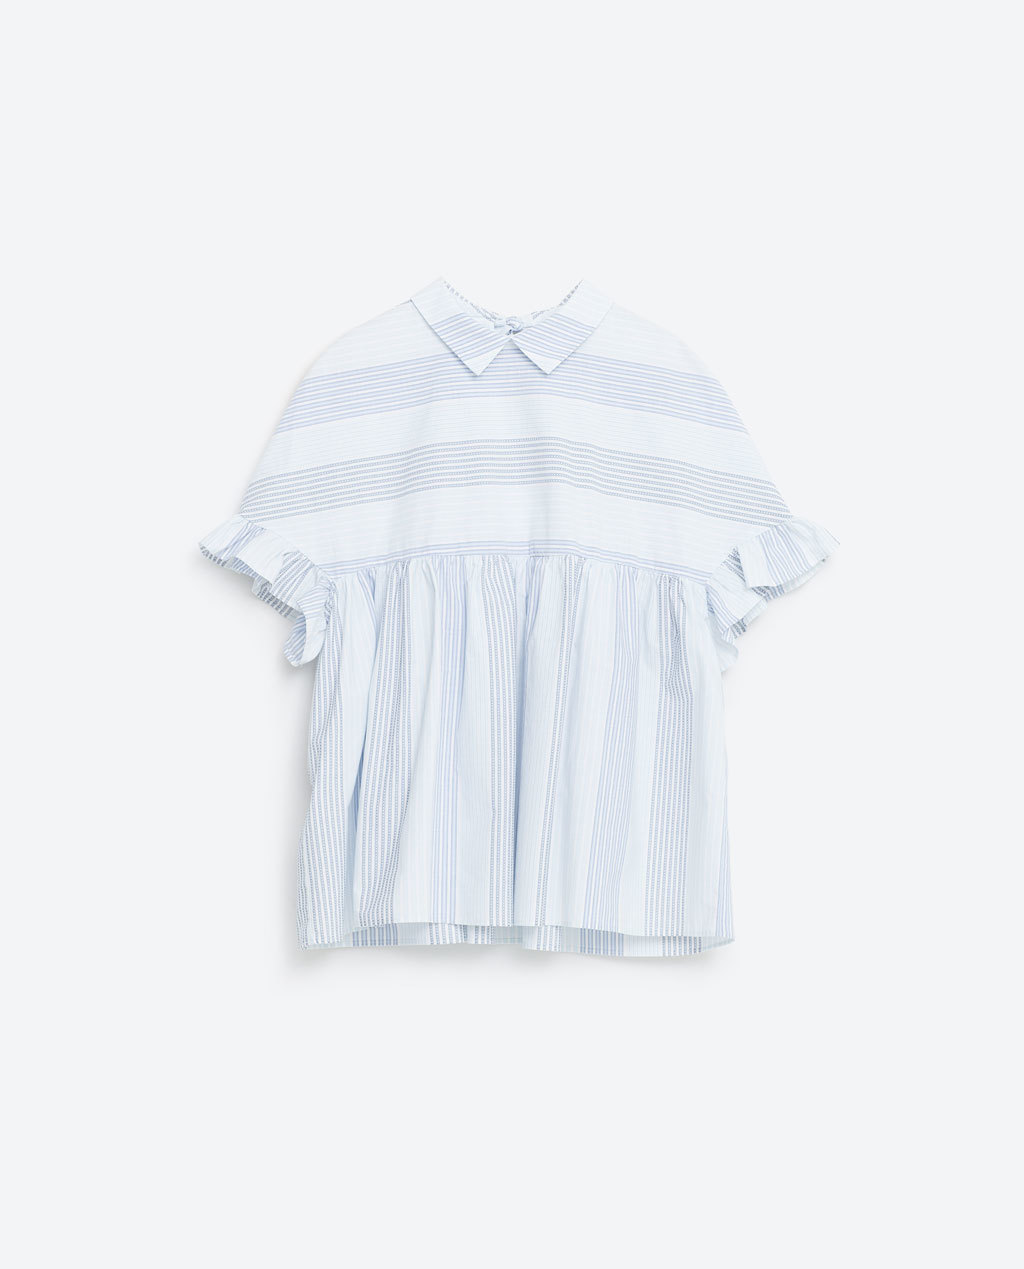 Voluminous Top - pattern: striped; style: blouse; predominant colour: white; secondary colour: royal blue; occasions: casual, creative work; length: standard; fibres: cotton - mix; fit: loose; neckline: no opening/shirt collar/peter pan; sleeve length: short sleeve; sleeve style: standard; pattern type: fabric; texture group: woven light midweight; season: s/s 2016; wardrobe: highlight